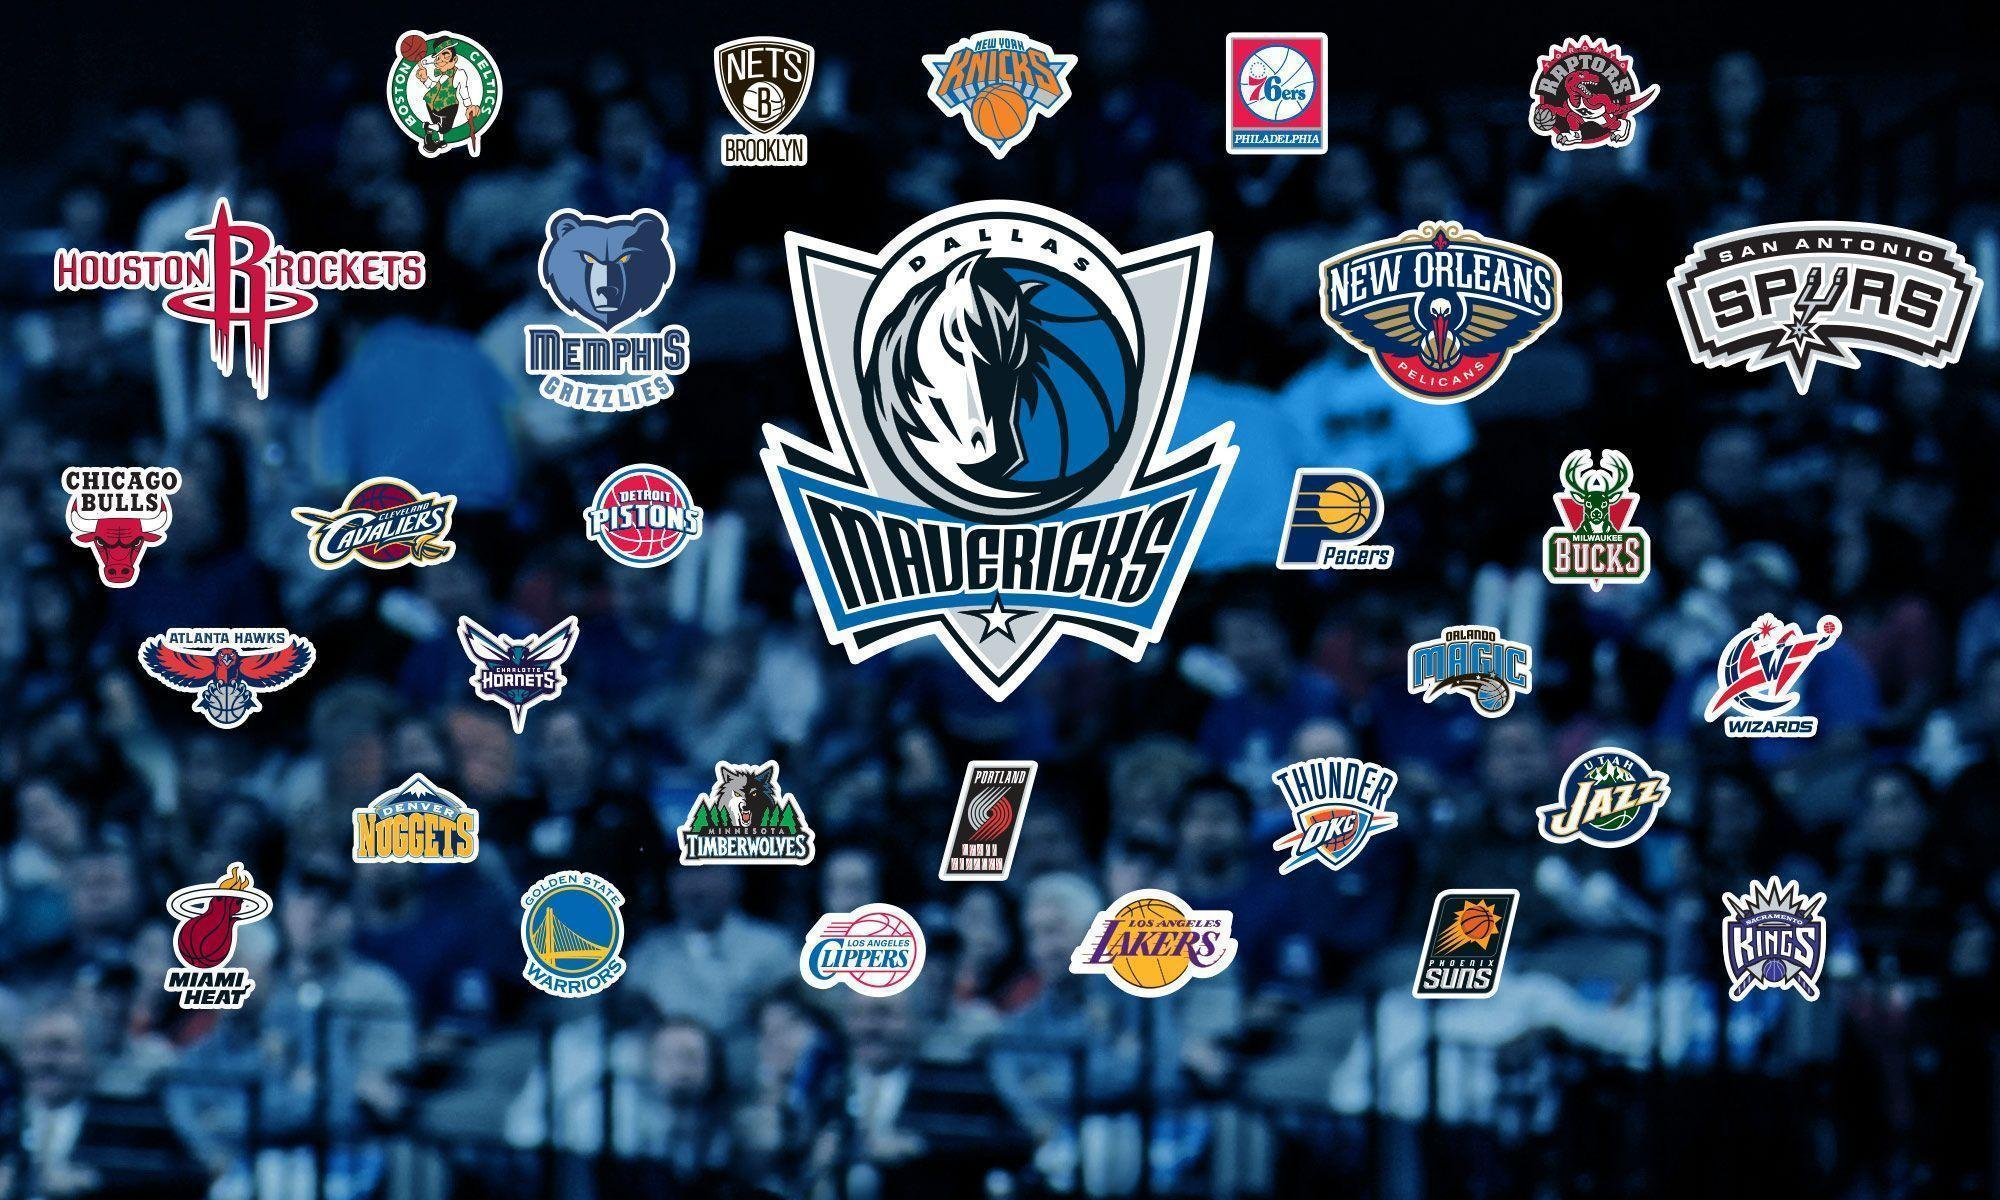 Nba Team Logos Wallpapers 2017 - Wallpaper Cave